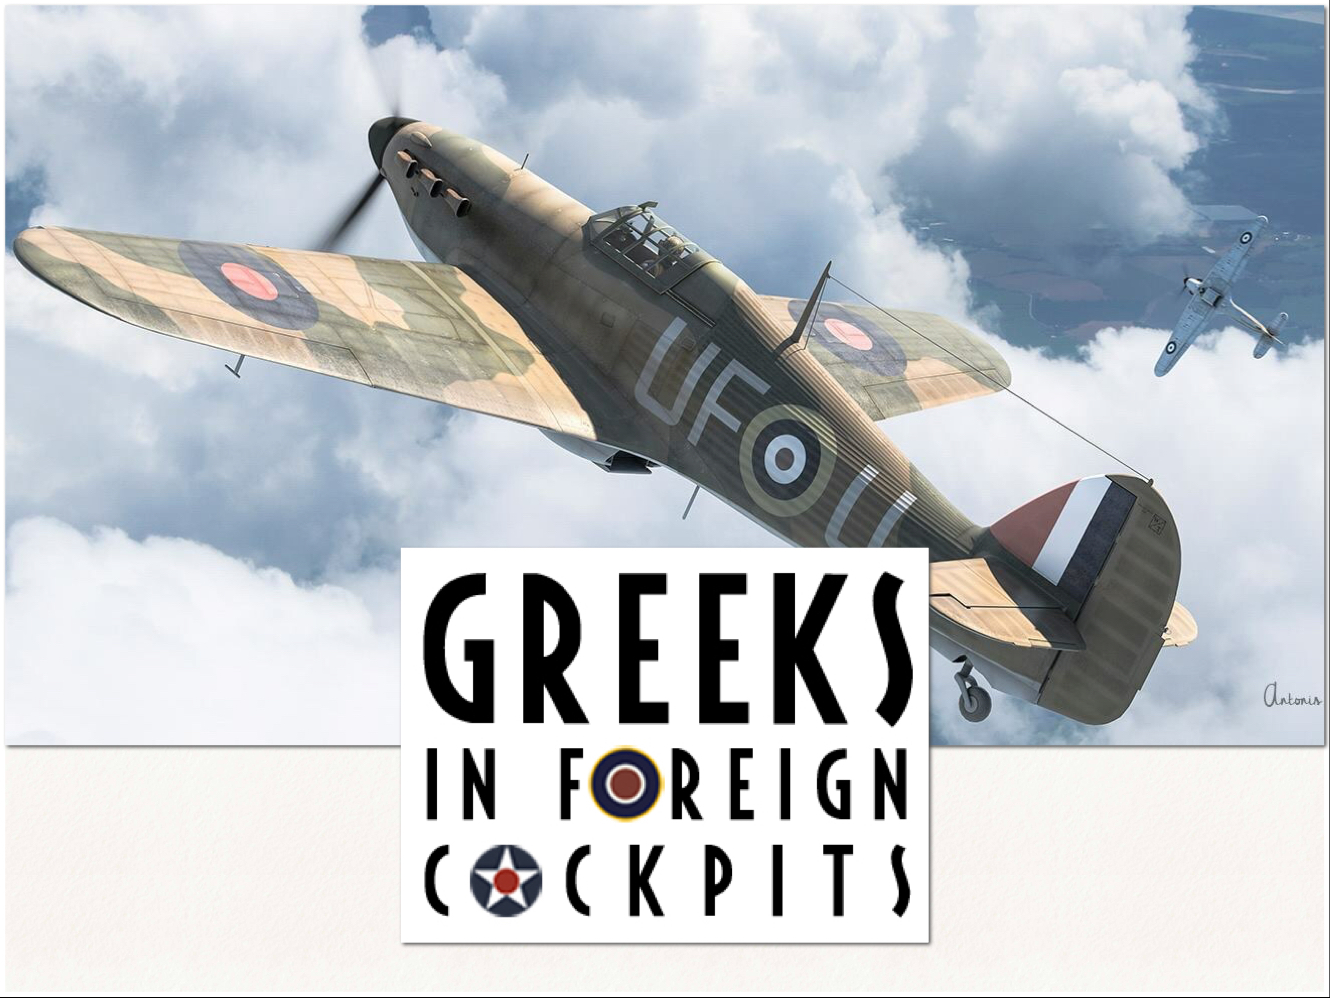 www.greeks-in-foreign-cockpits.com